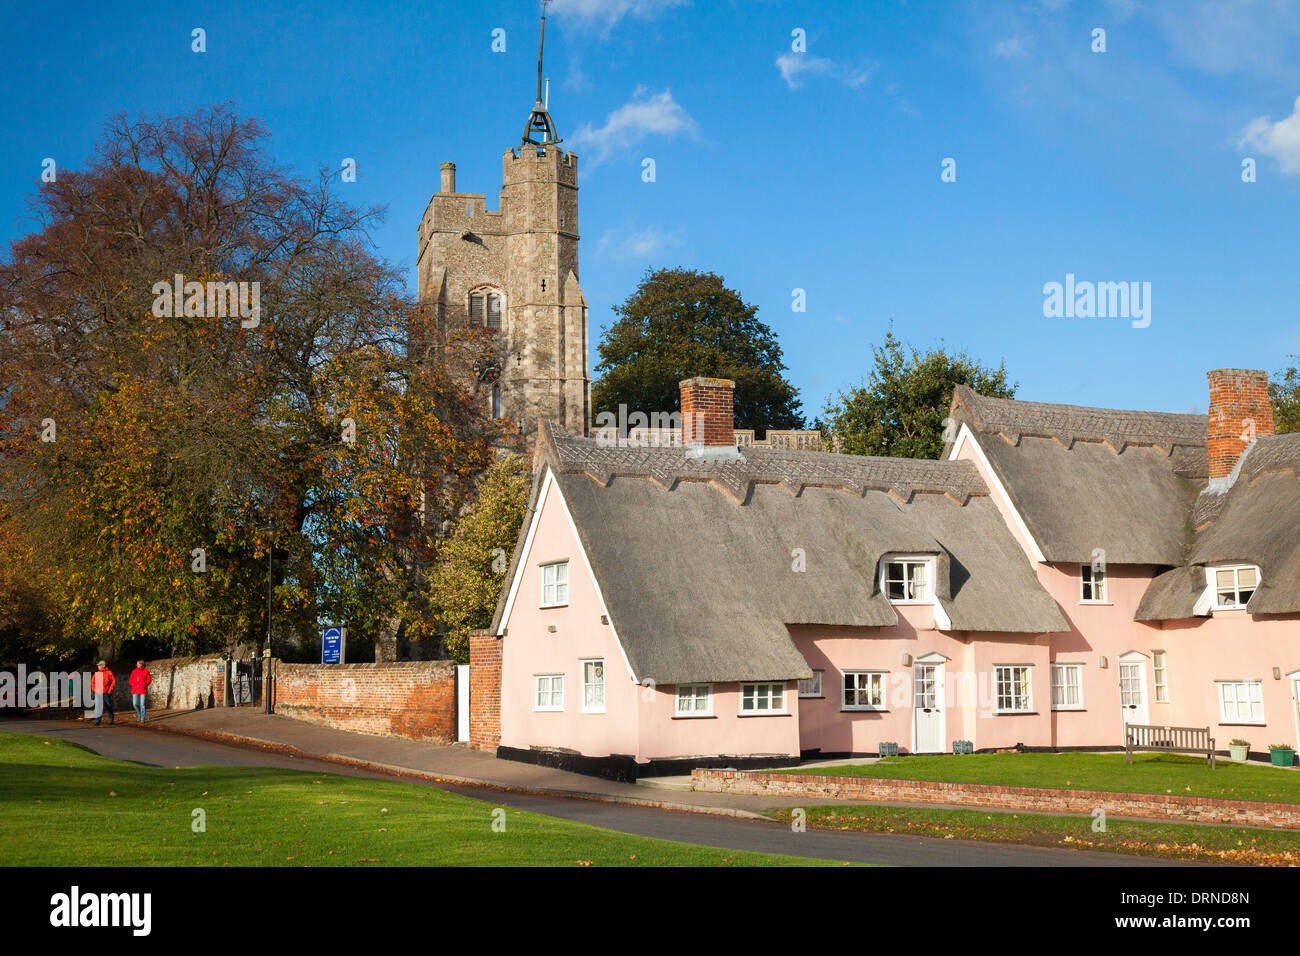 The Pink Cottages beneath St Mary's church, Cavendish, Suffolk, England. - Stock Image